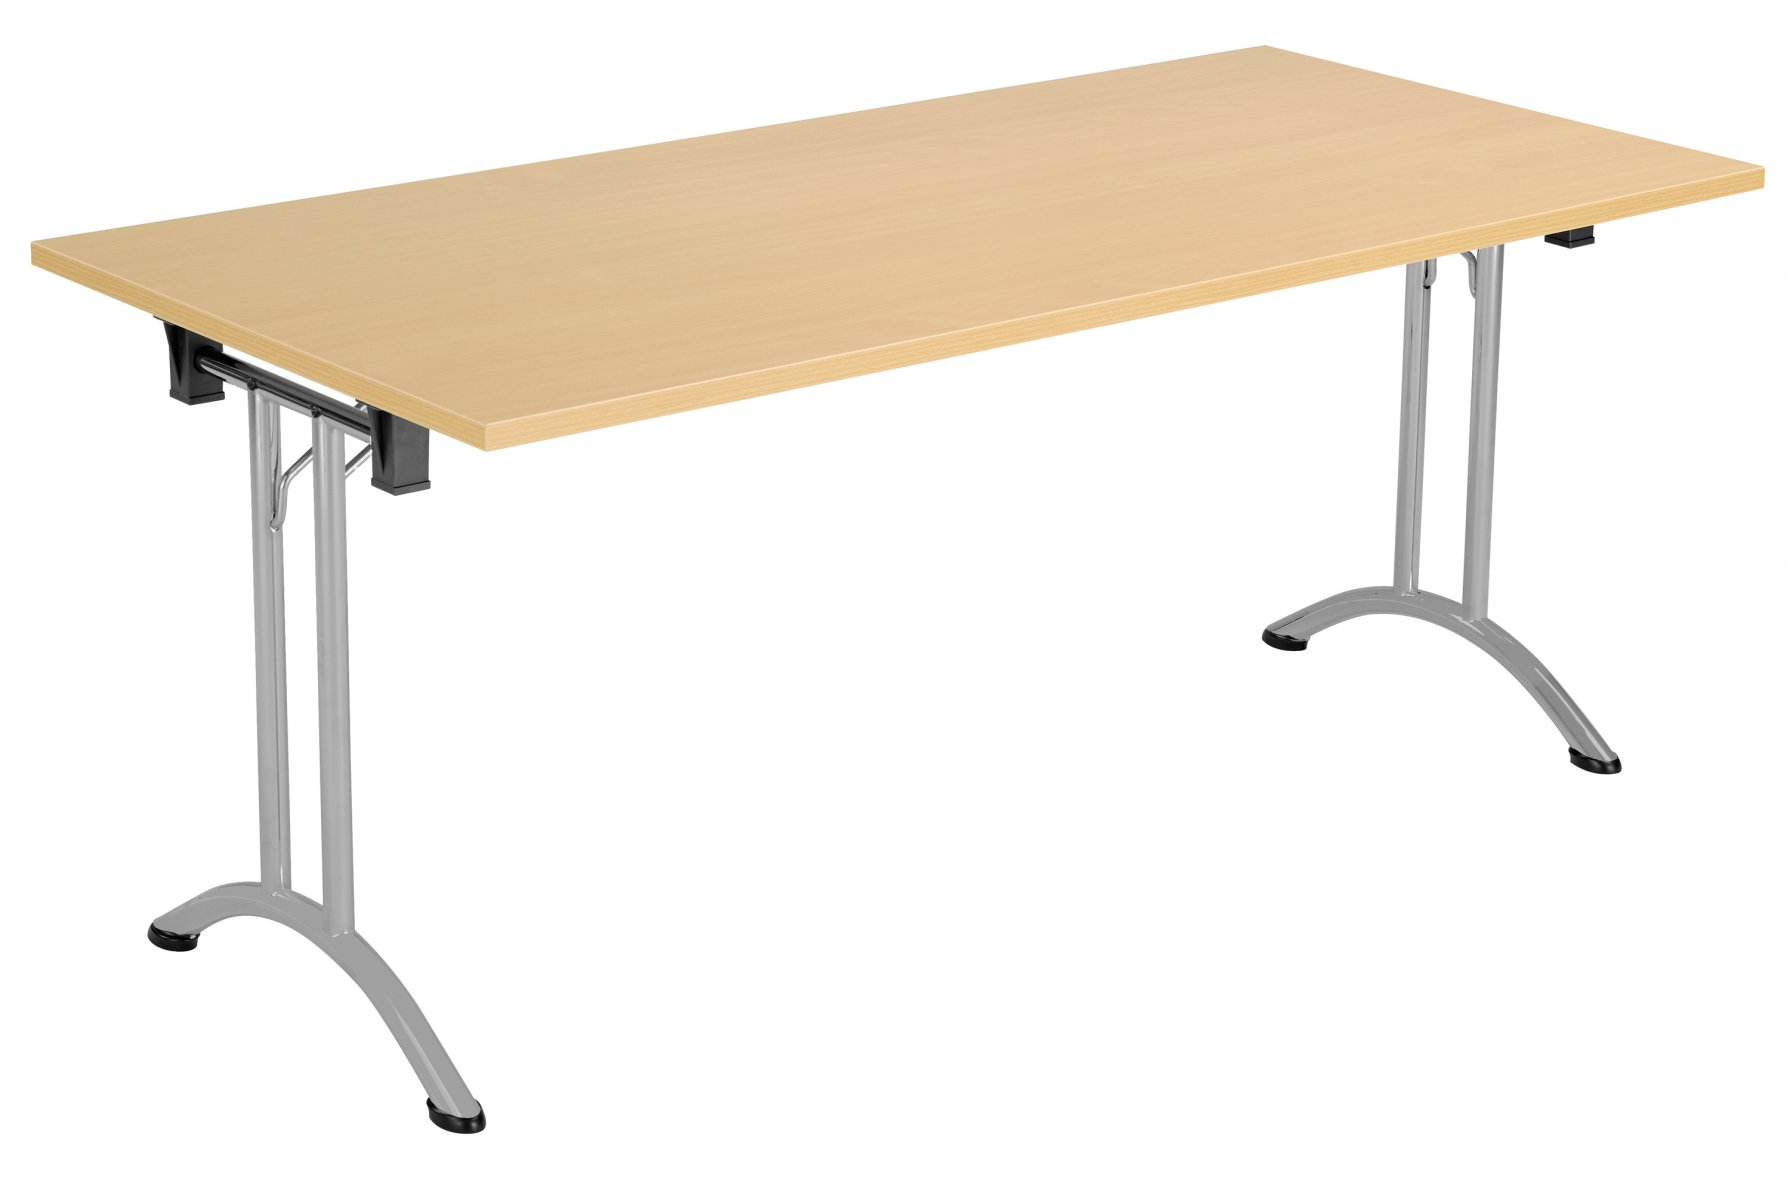 Union Rectangular 160 x 80 Folding Meeting Table - Nova Oak with Silver Frame